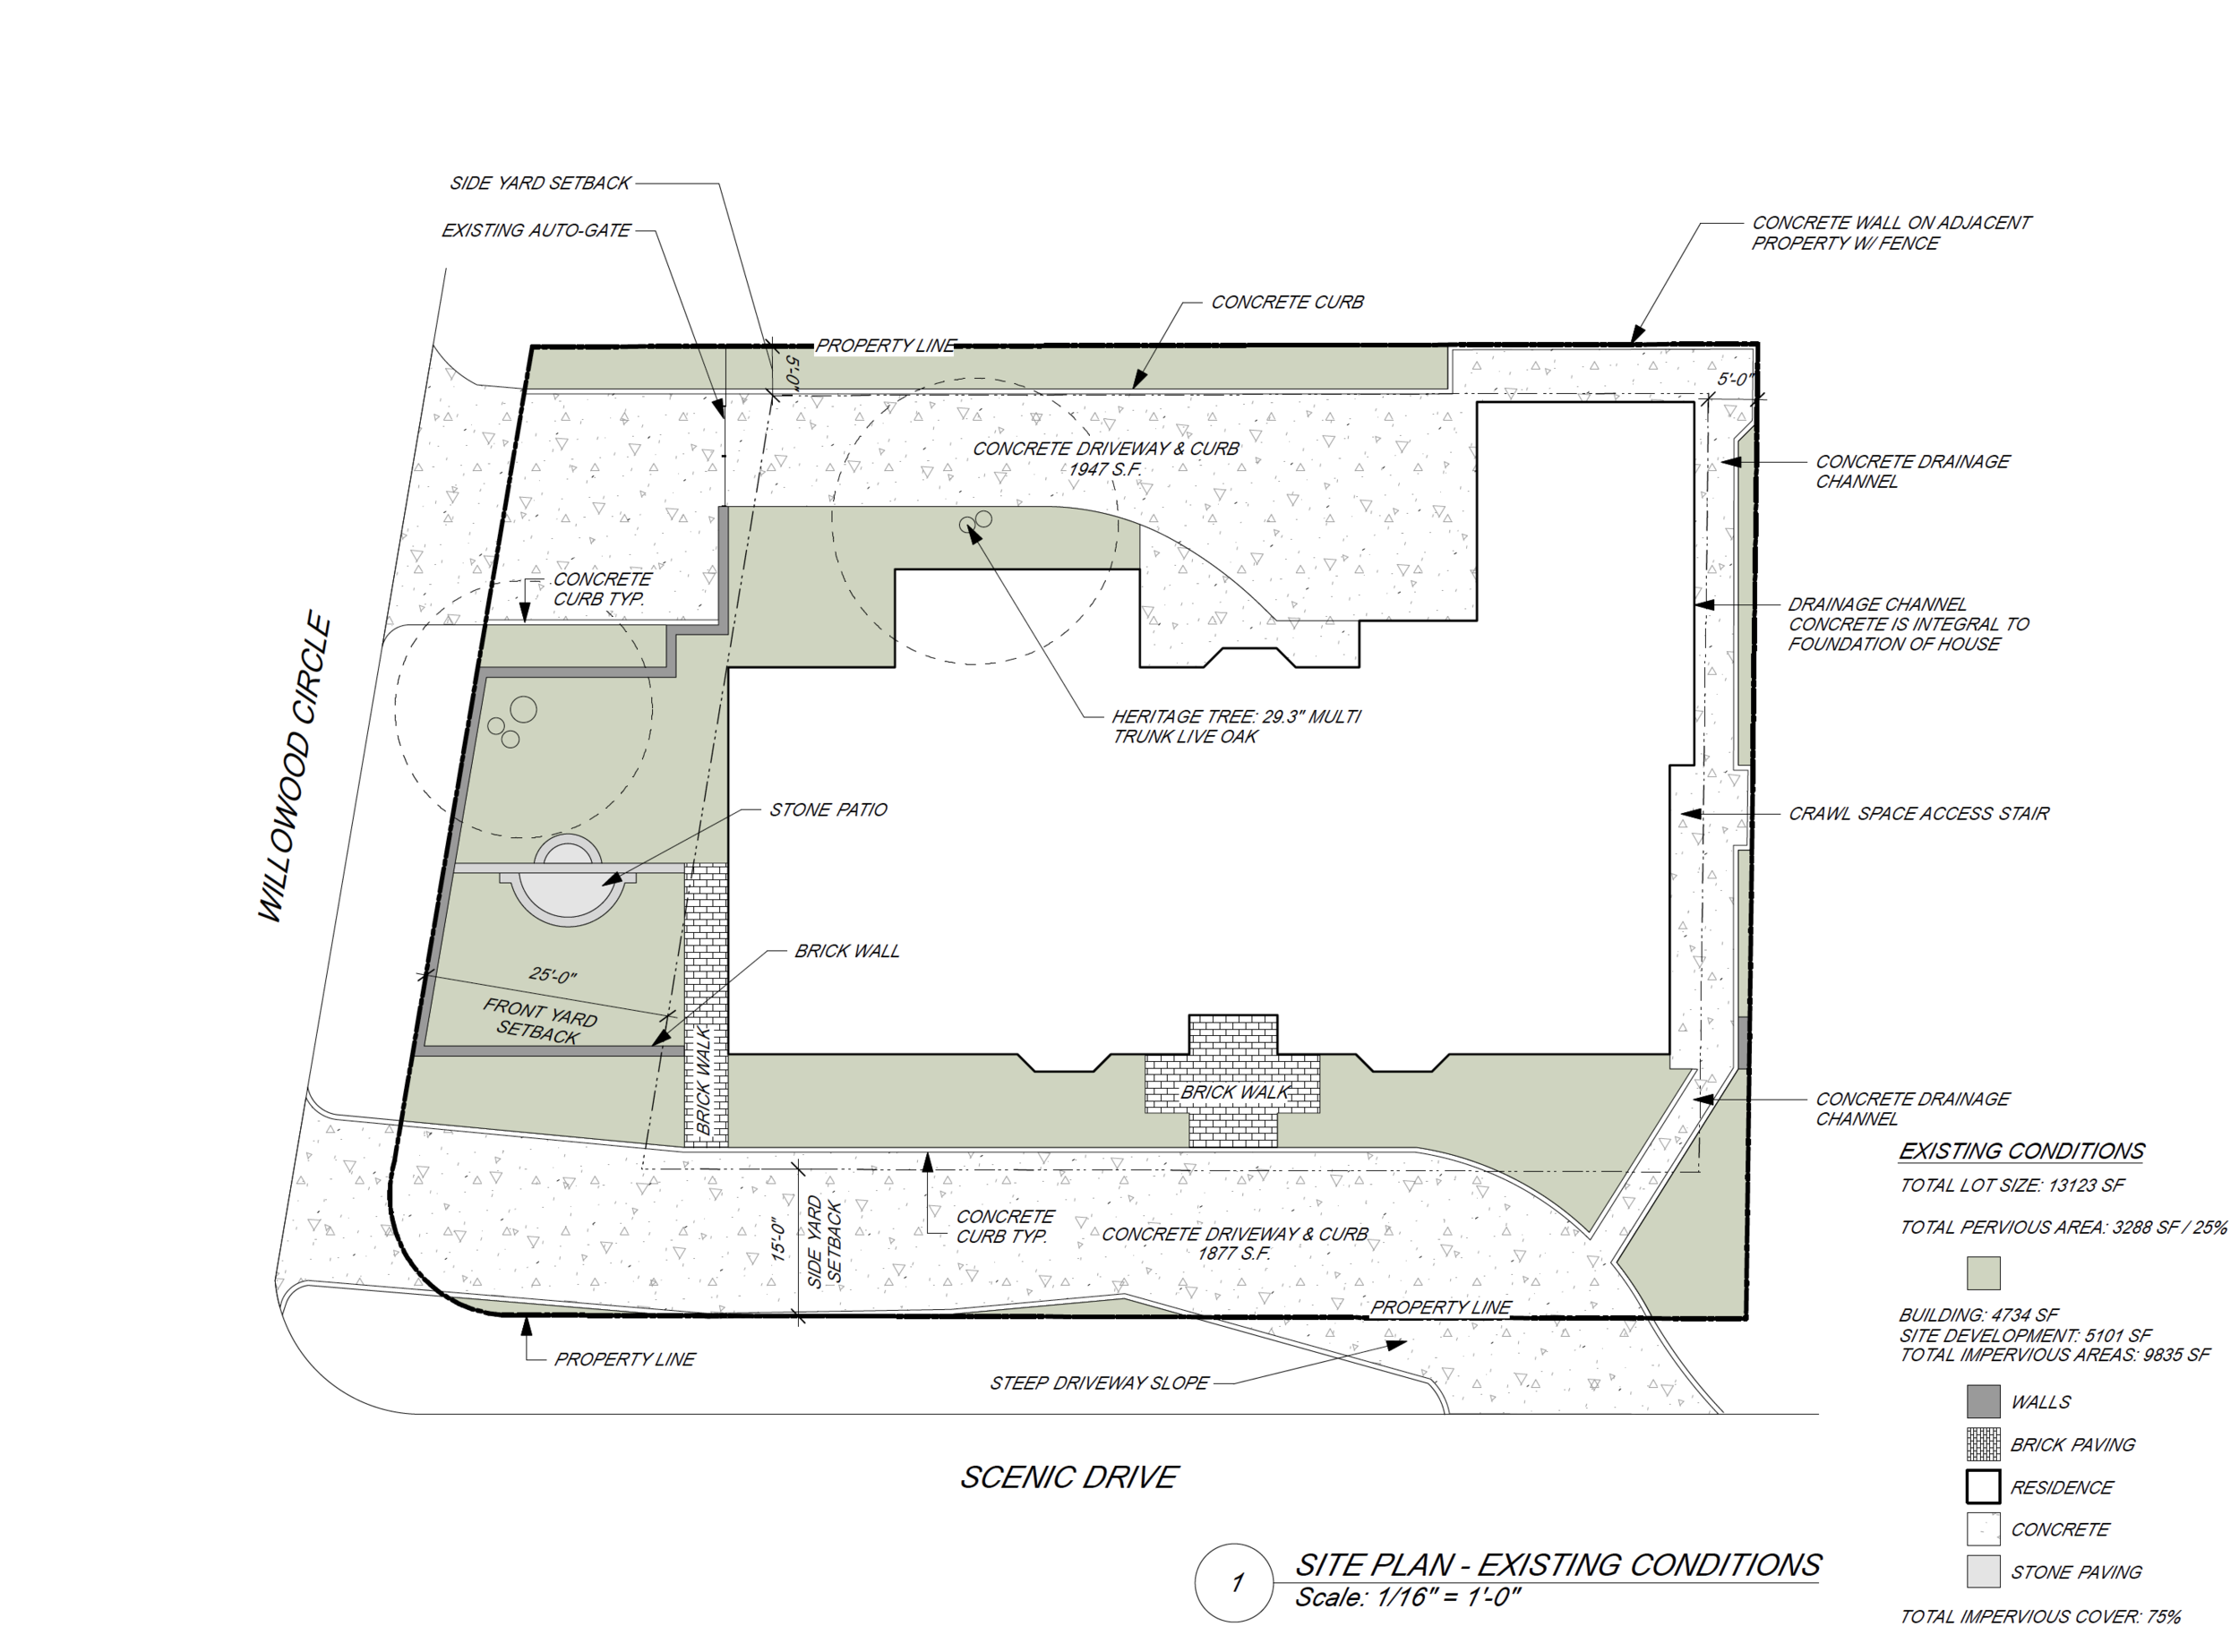 A site plan showing the existing site conditions.